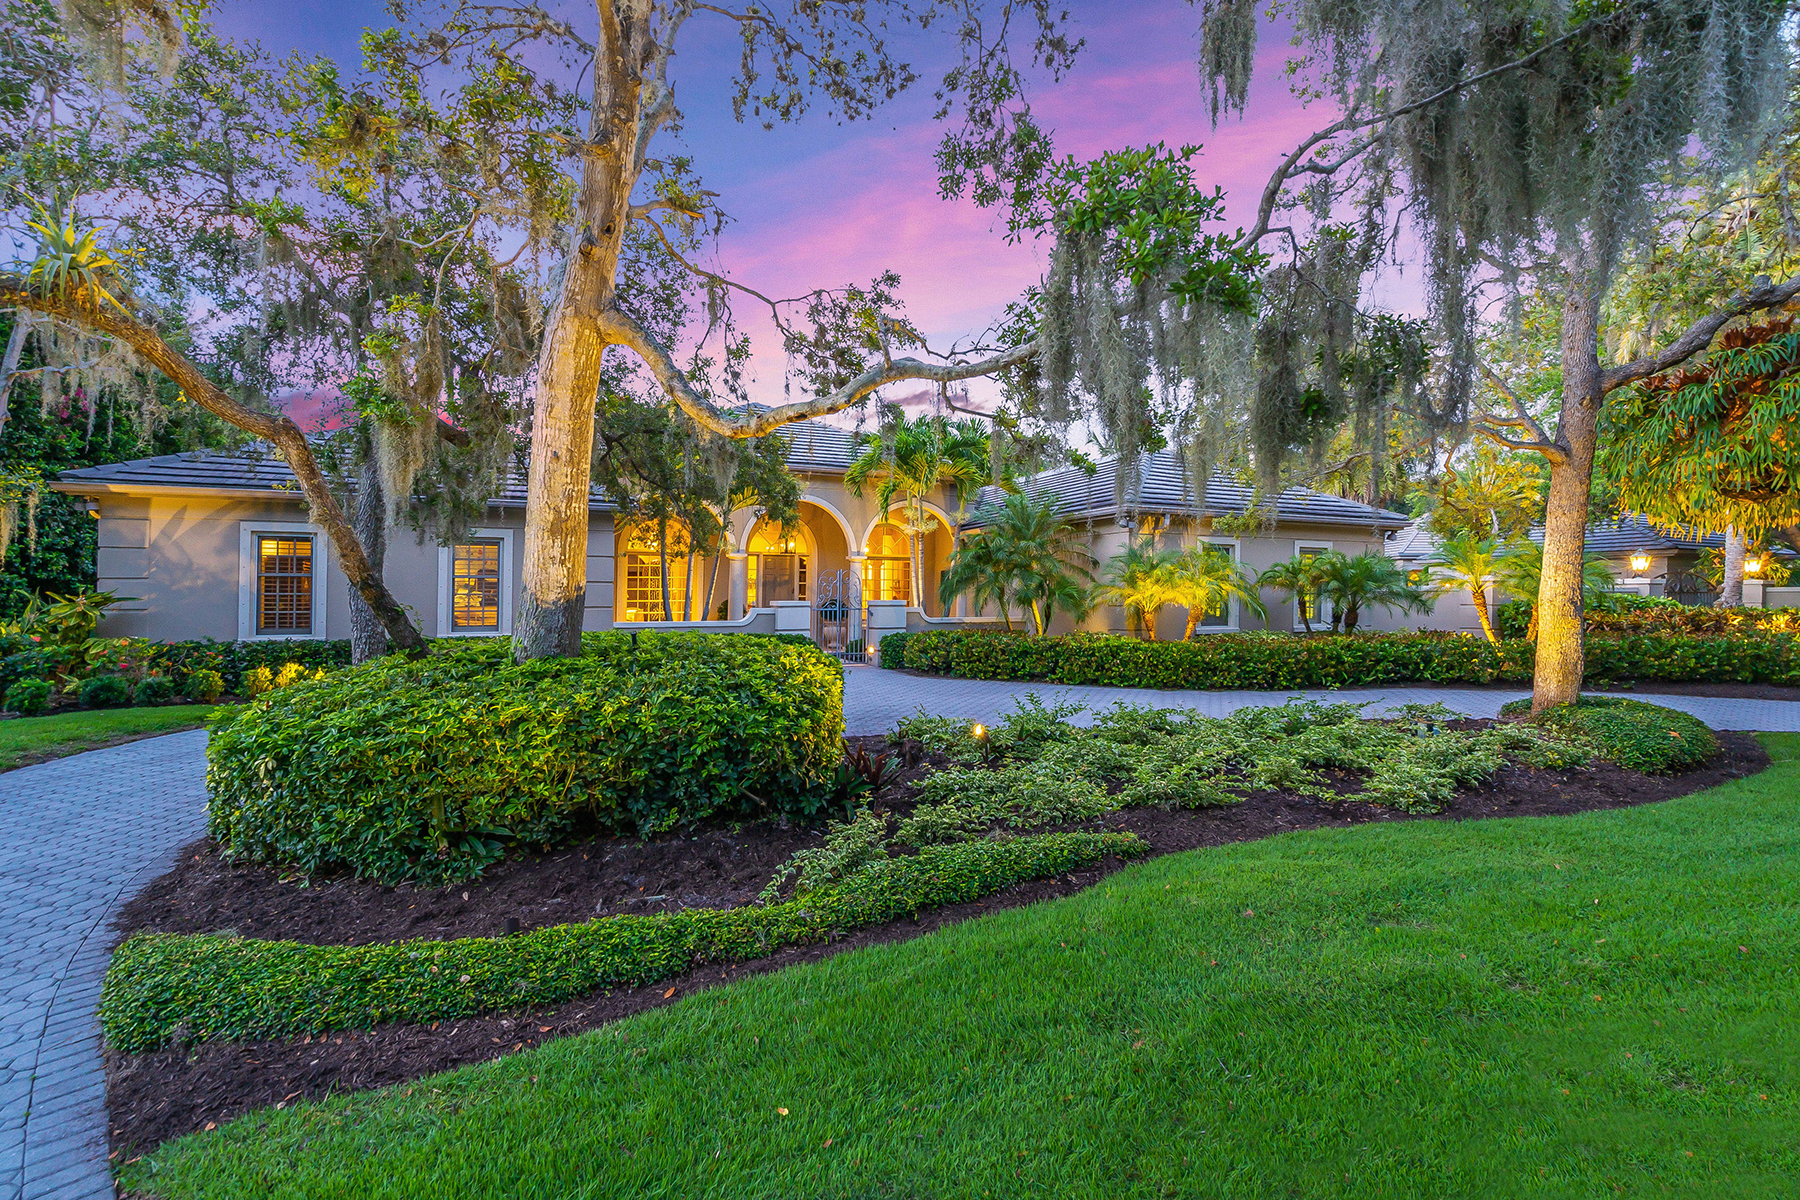 Single Family Homes for Sale at THE OAKS BAYSIDE 285 Sugar Mill Dr Osprey, Florida 34229 United States